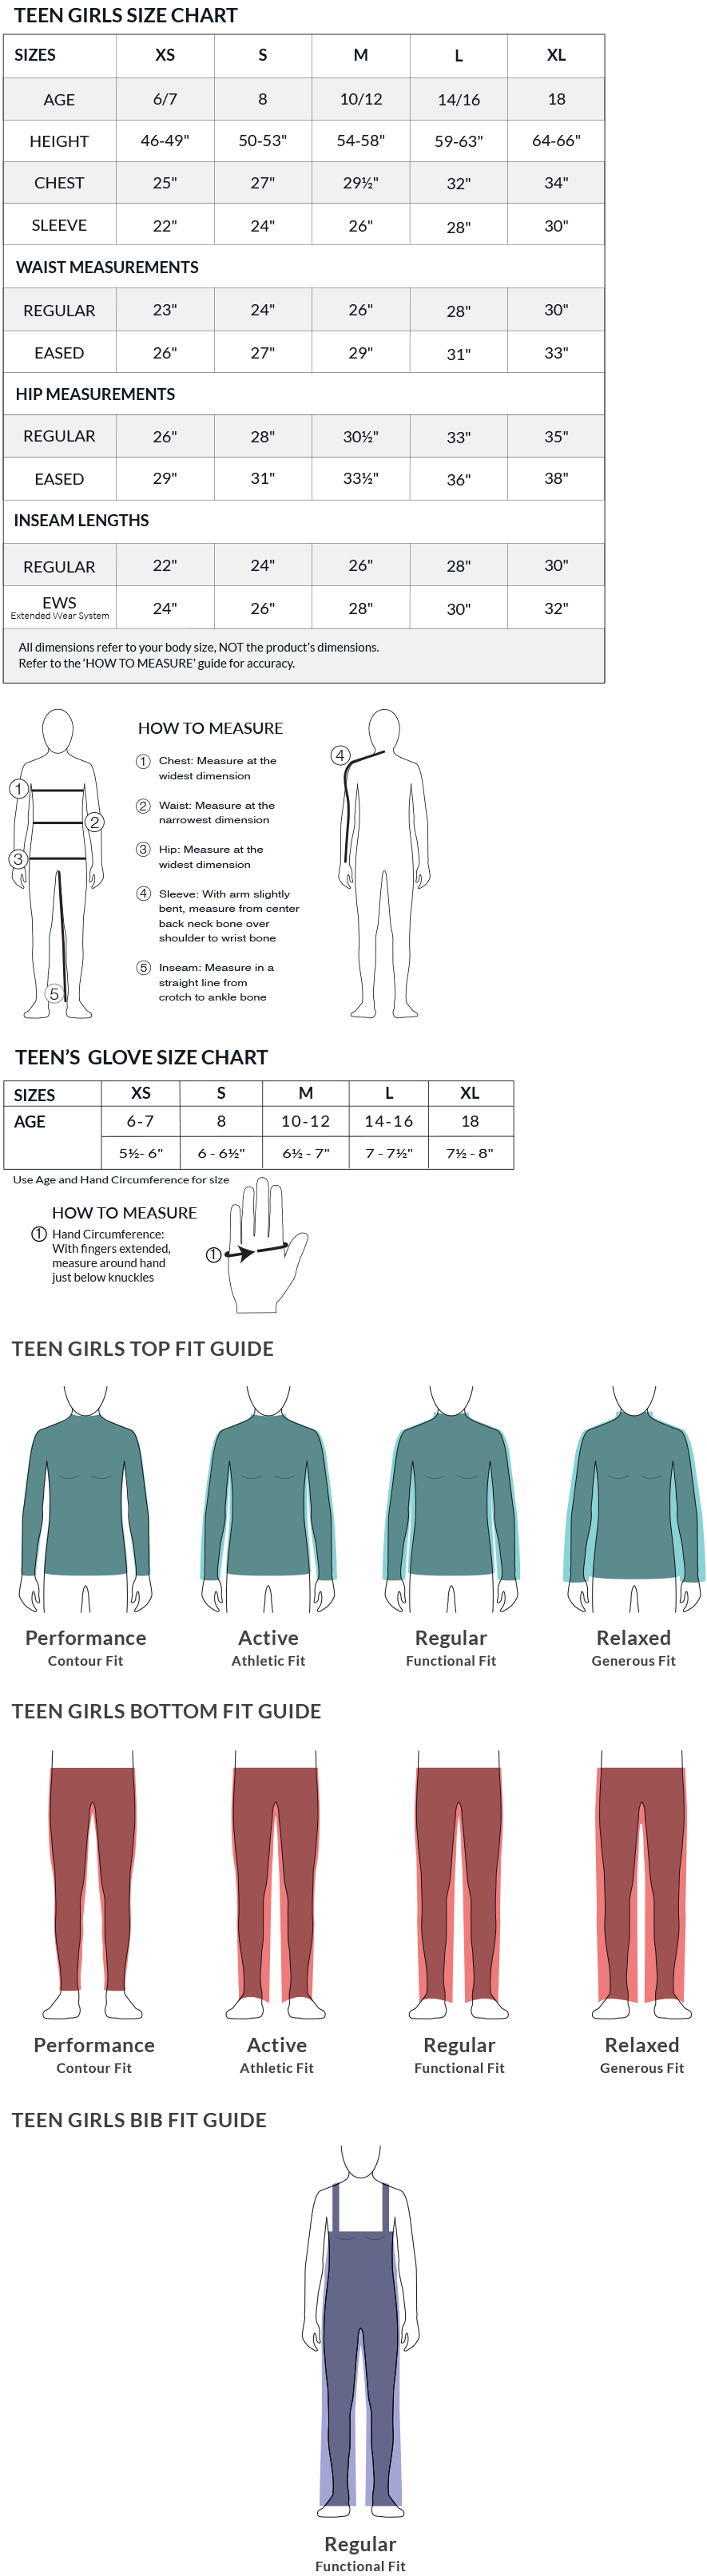 Obermeyer Teen Girl's Size Charts and Fit Guide